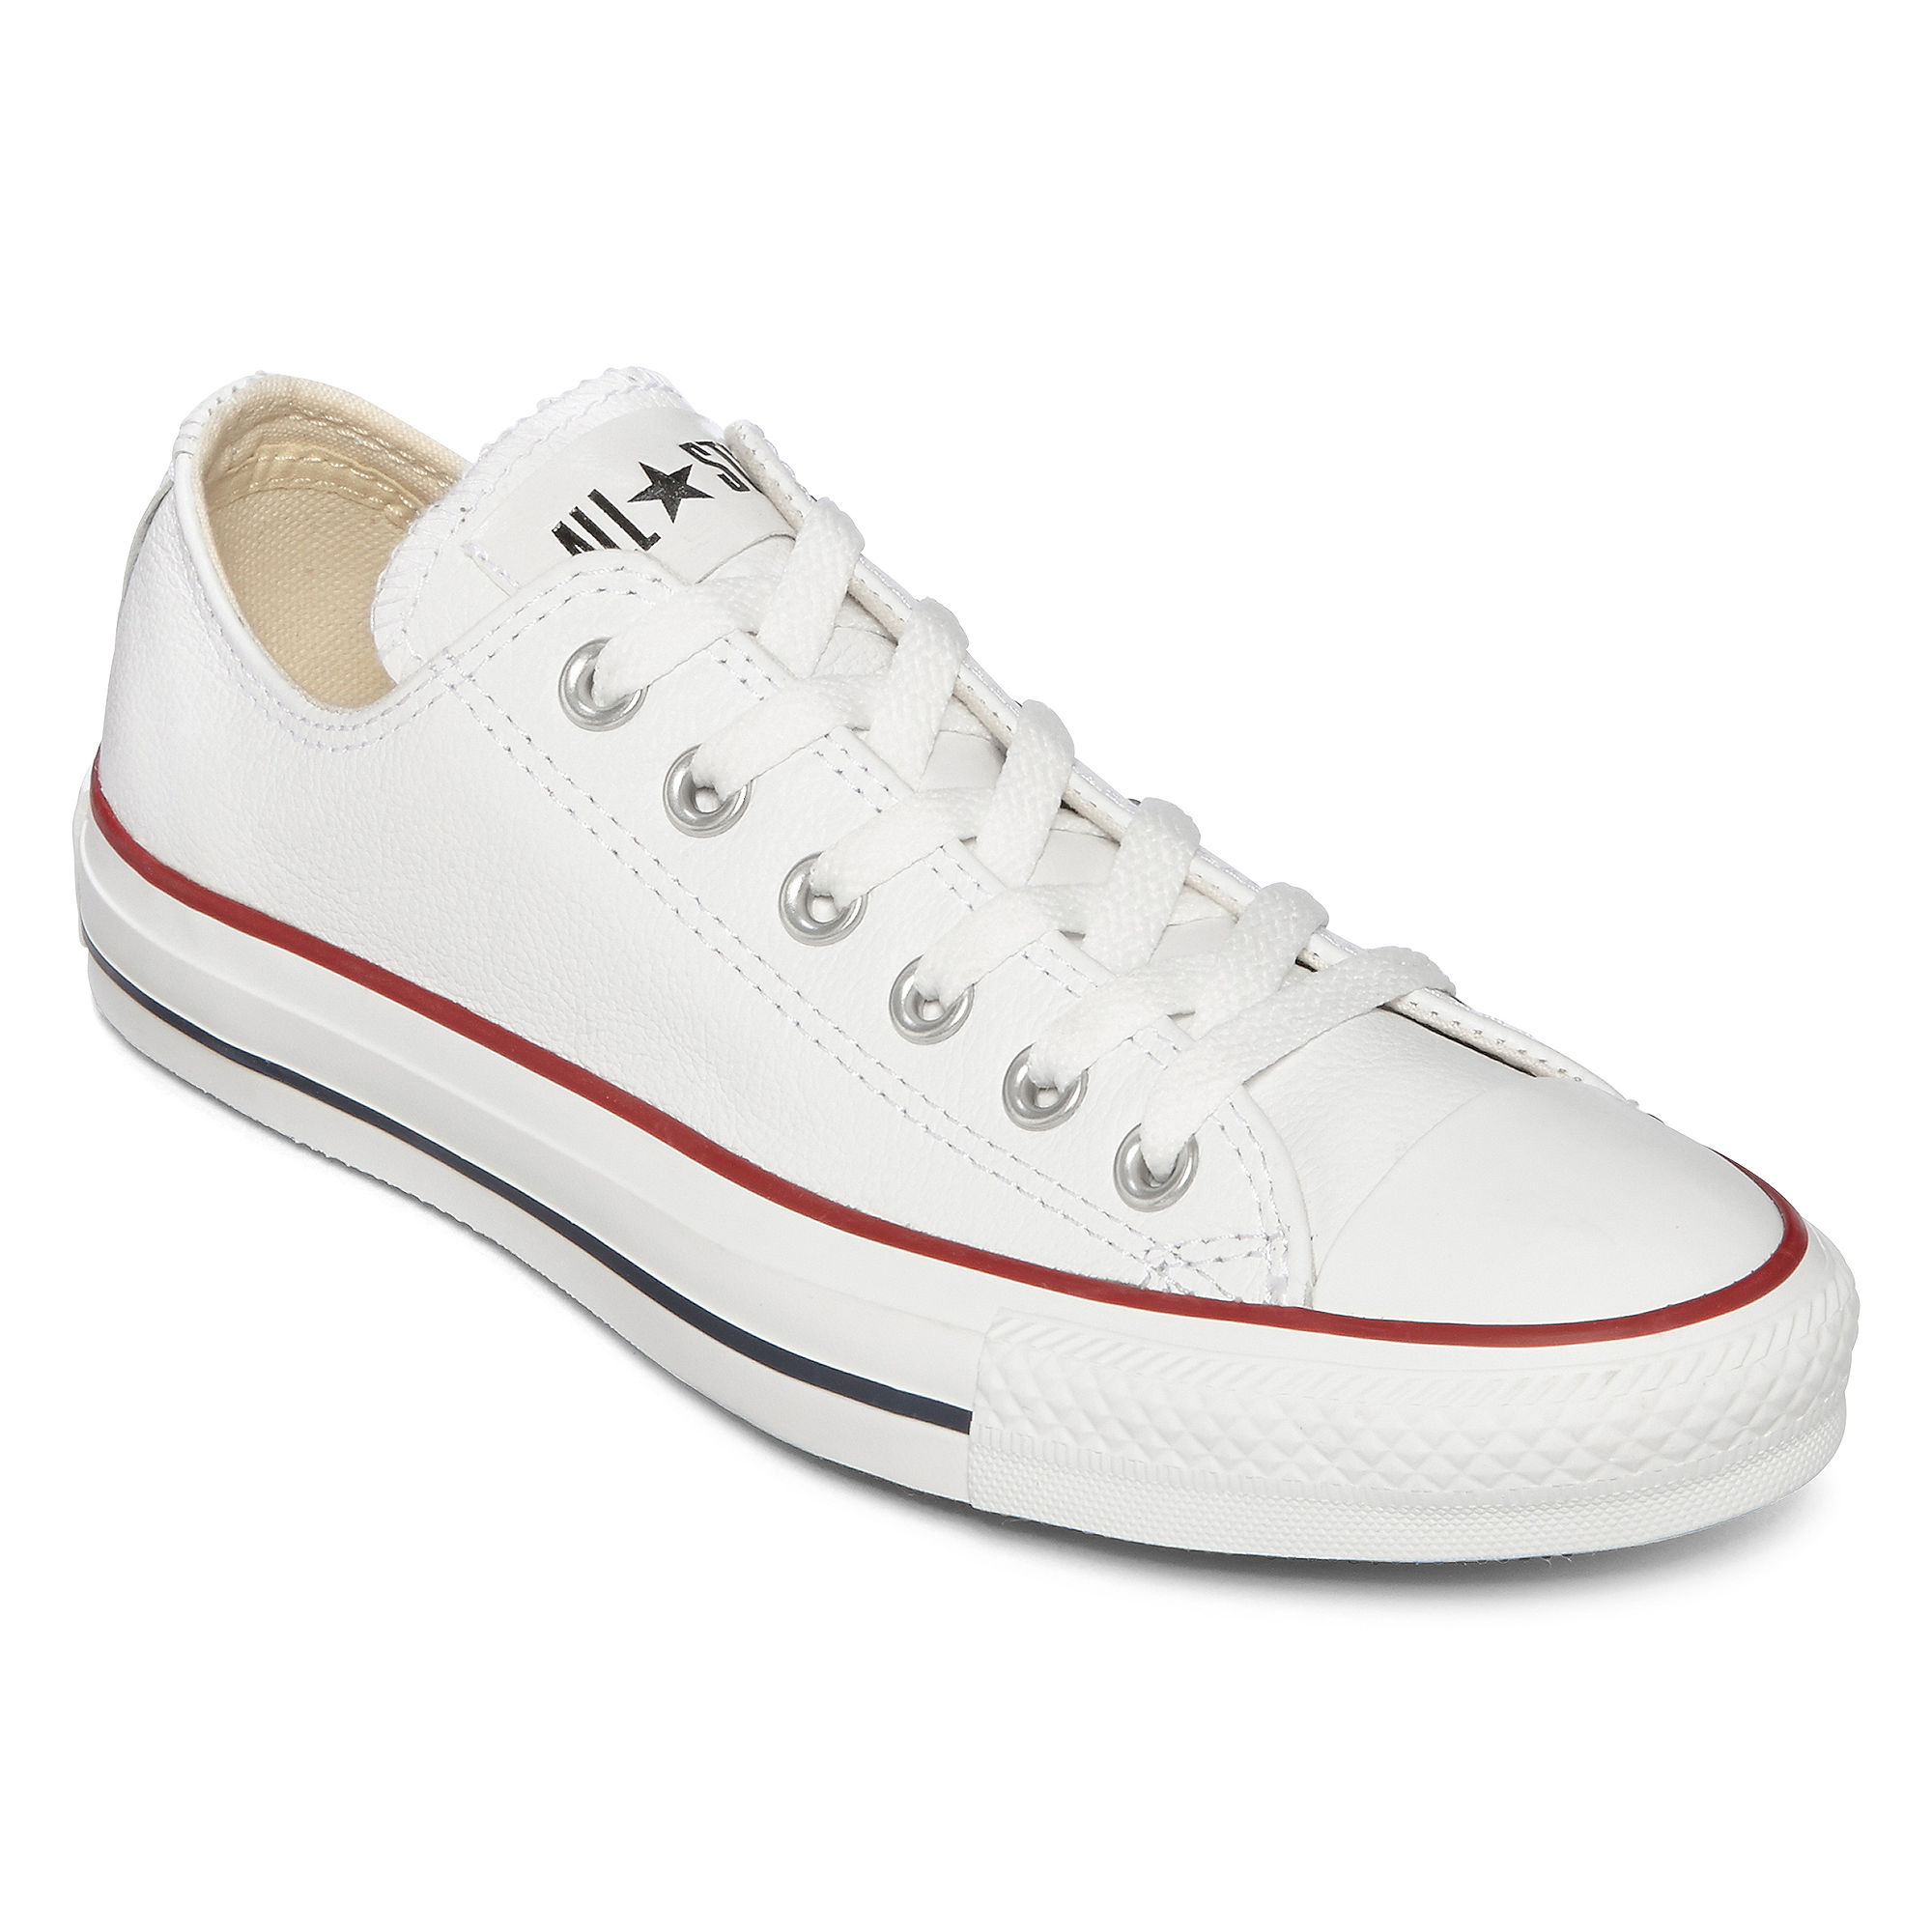 07017d48b89a UPC 886951121885. ZOOM. UPC 886951121885 has following Product Name  Variations  Converse All Star Low Leather Optical White ...